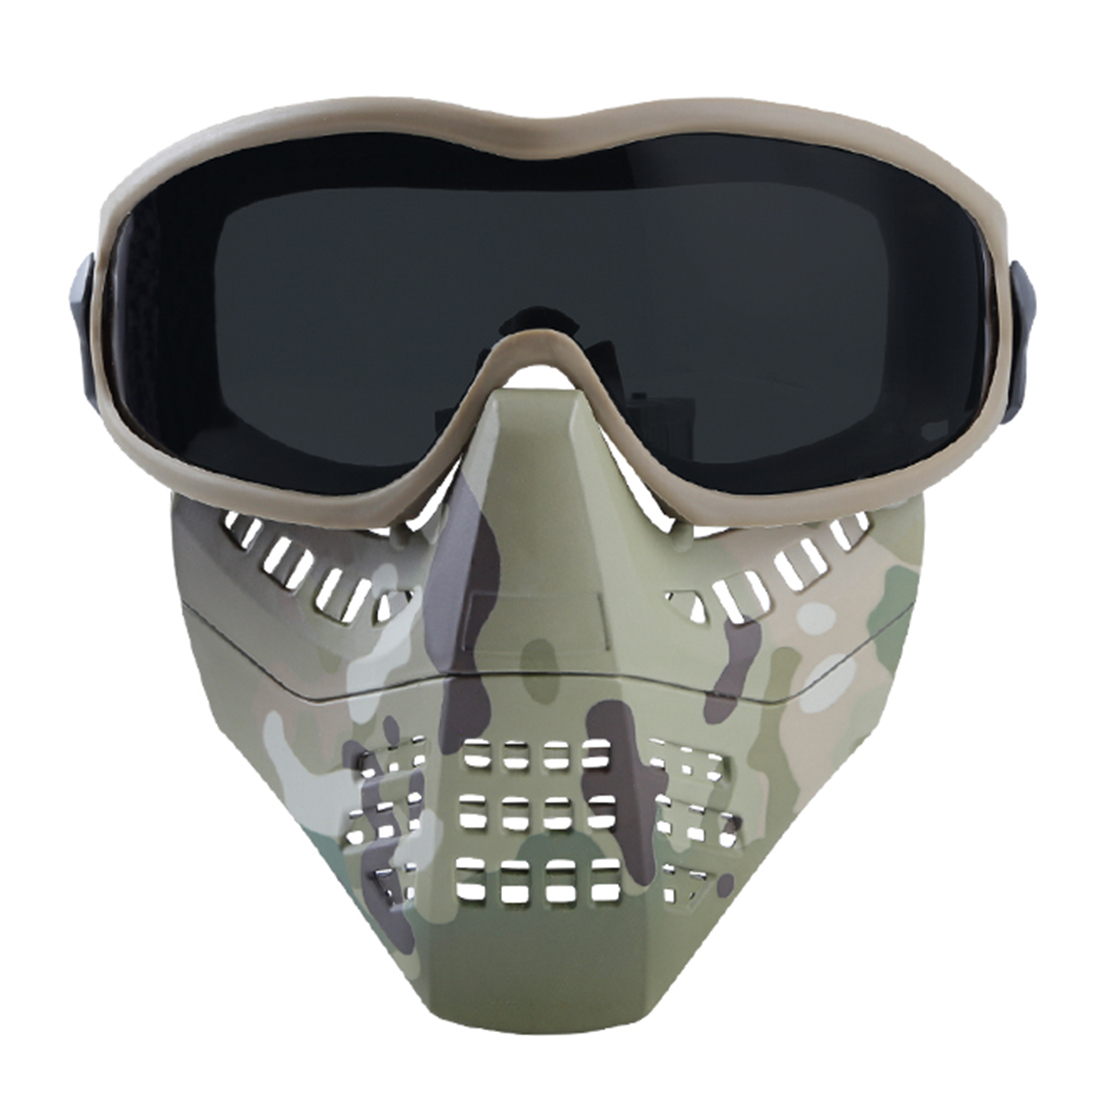 WST Outdoor Tactical Helmet Accessories Ant Type Mask Face Guard Protective Mask For Hunting Shooting Defend Mask 2019 Summer